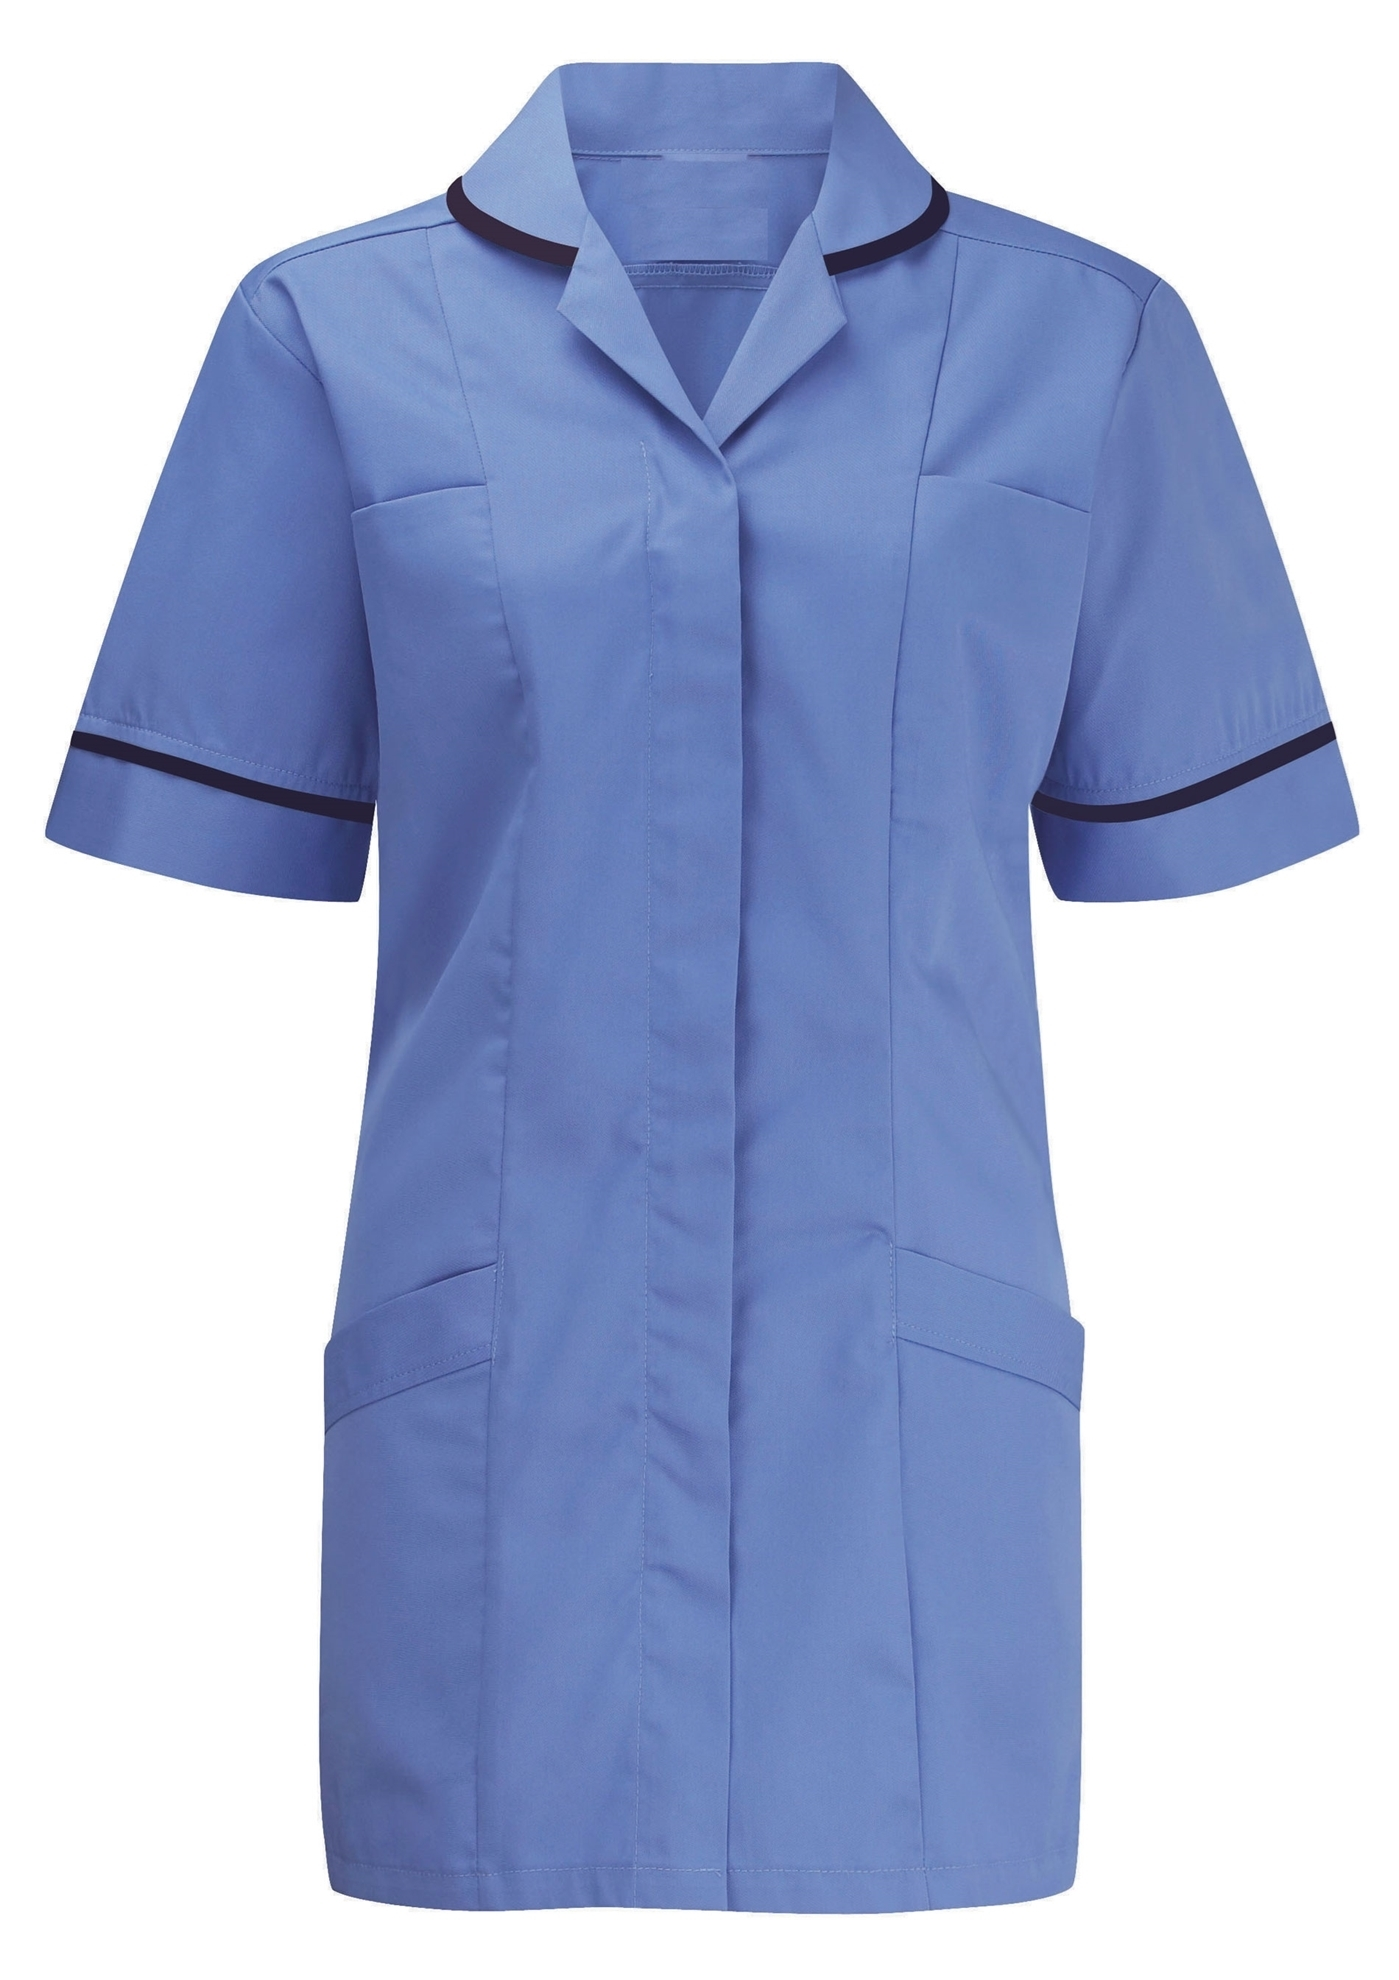 Picture of Advantage Tunic - Metro Blue/Navy